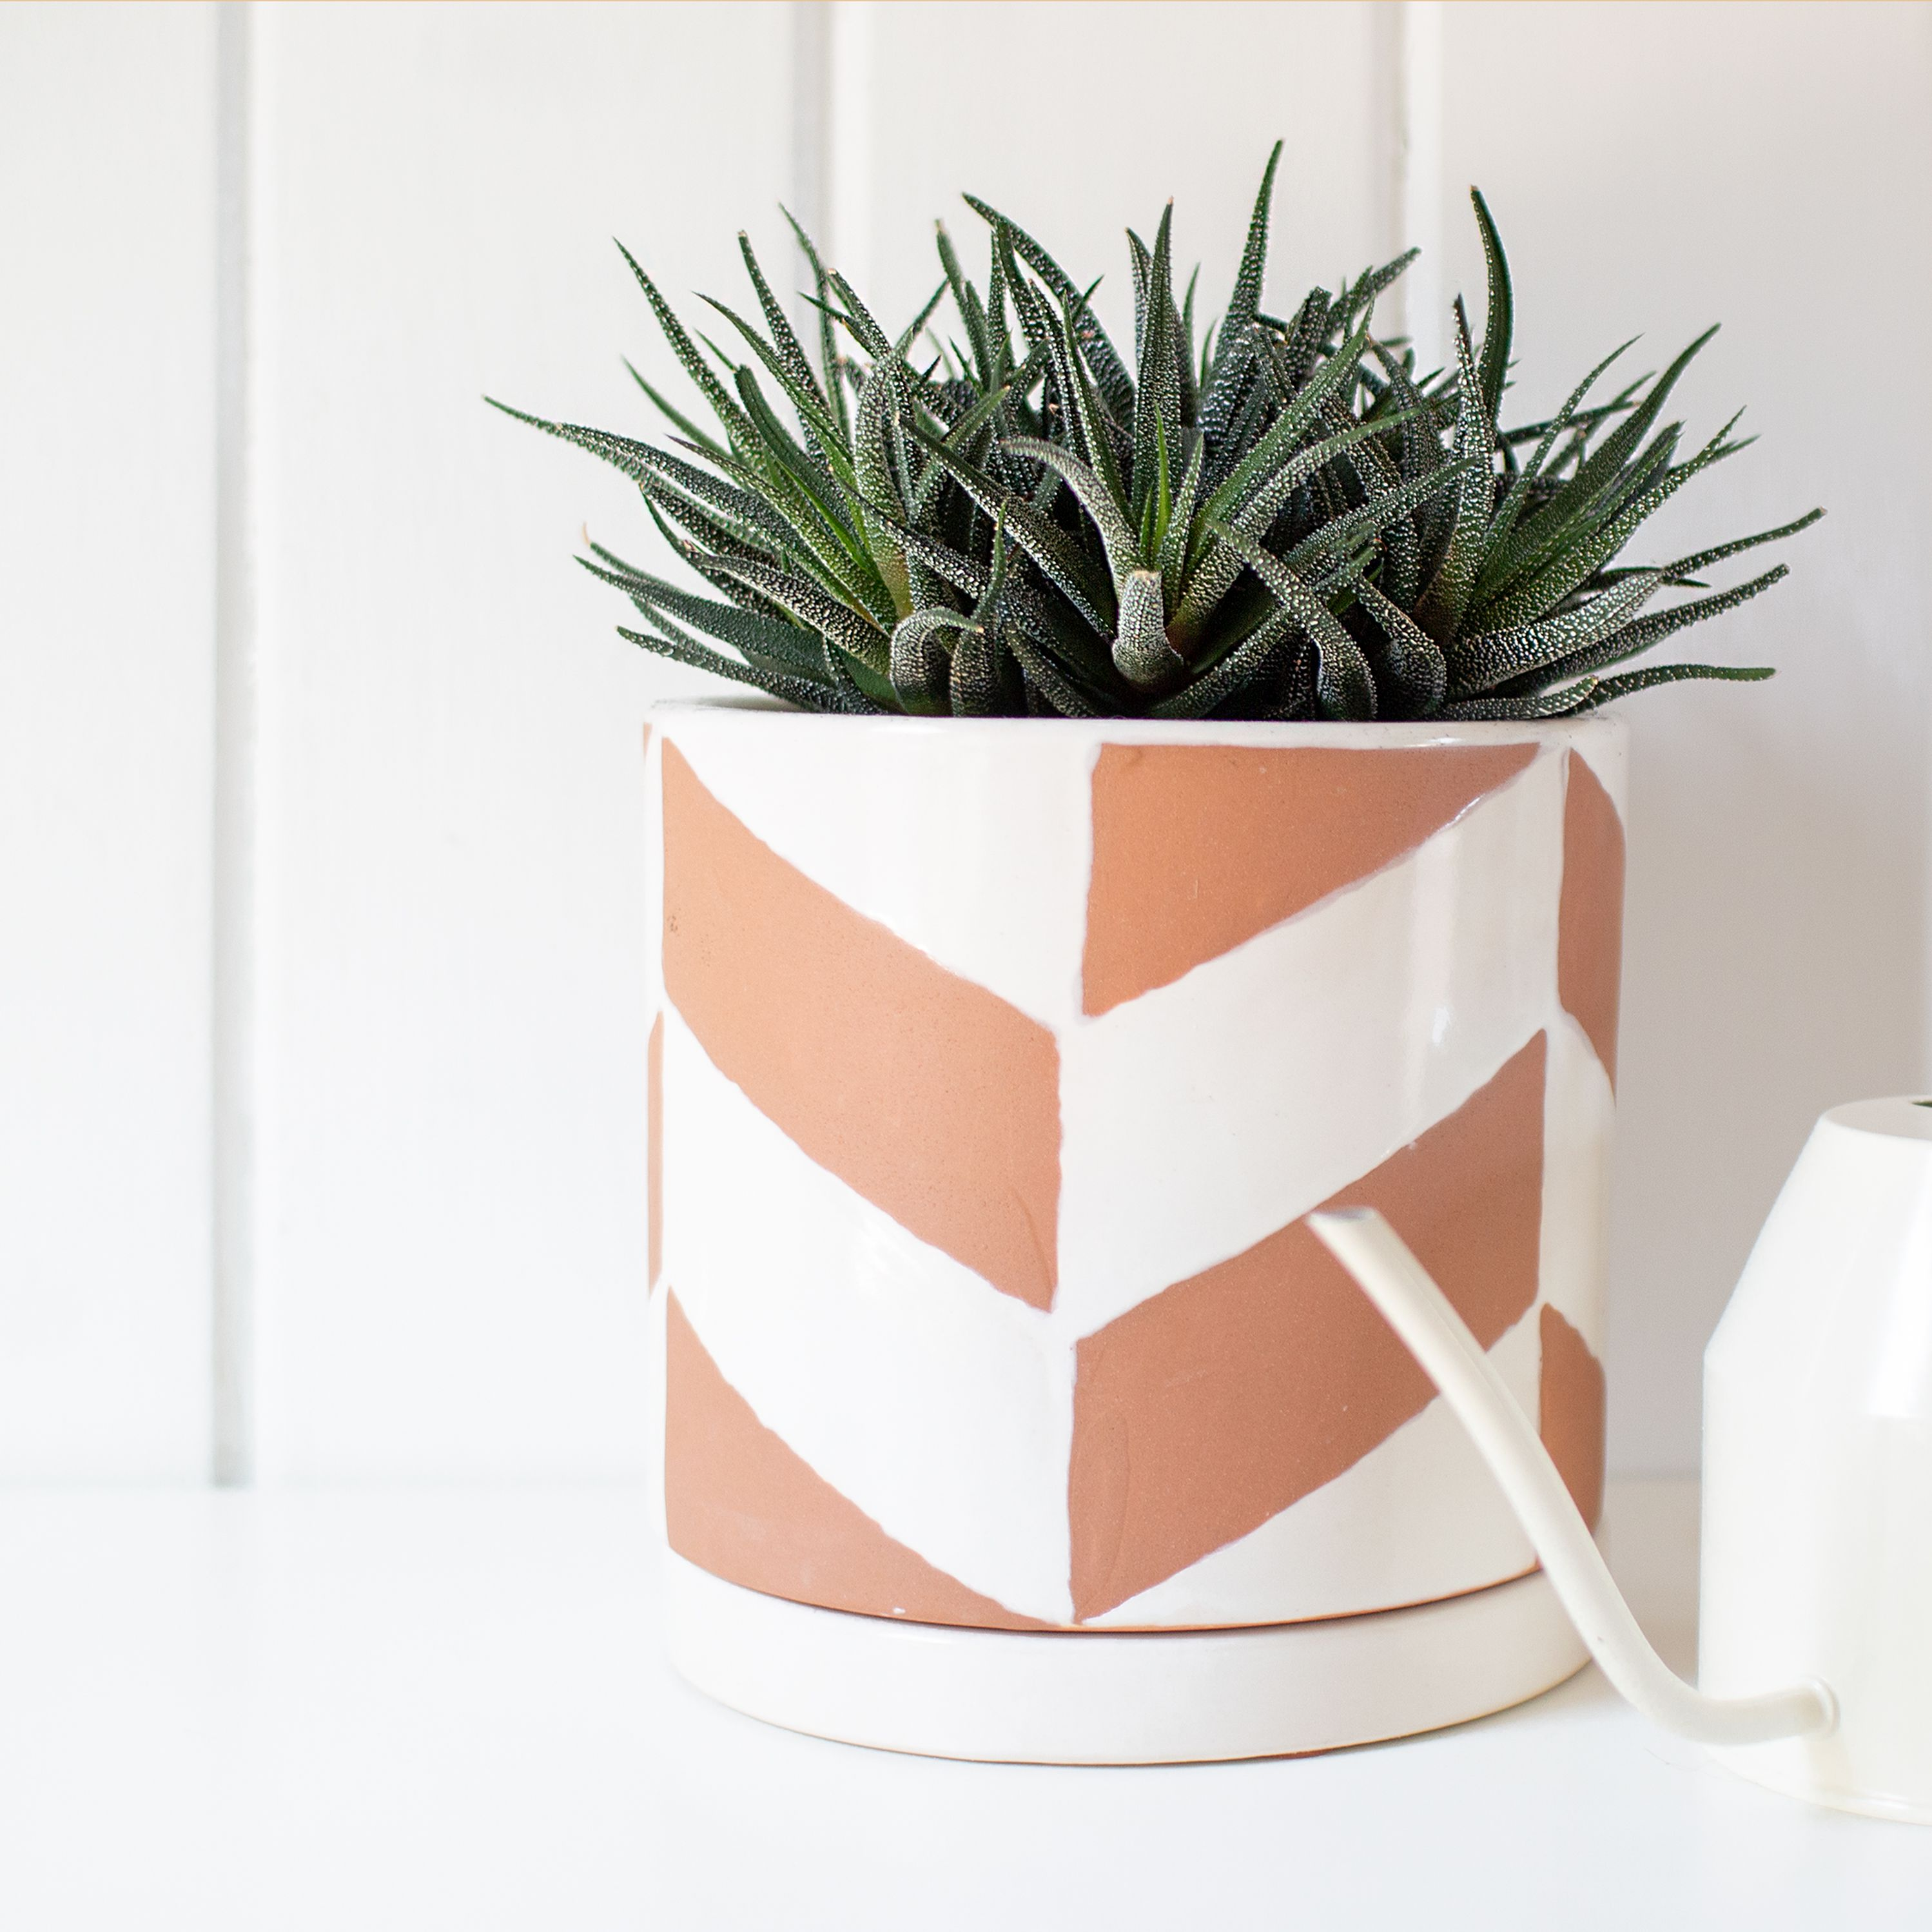 Haworthia Plant Care And Growing Guide